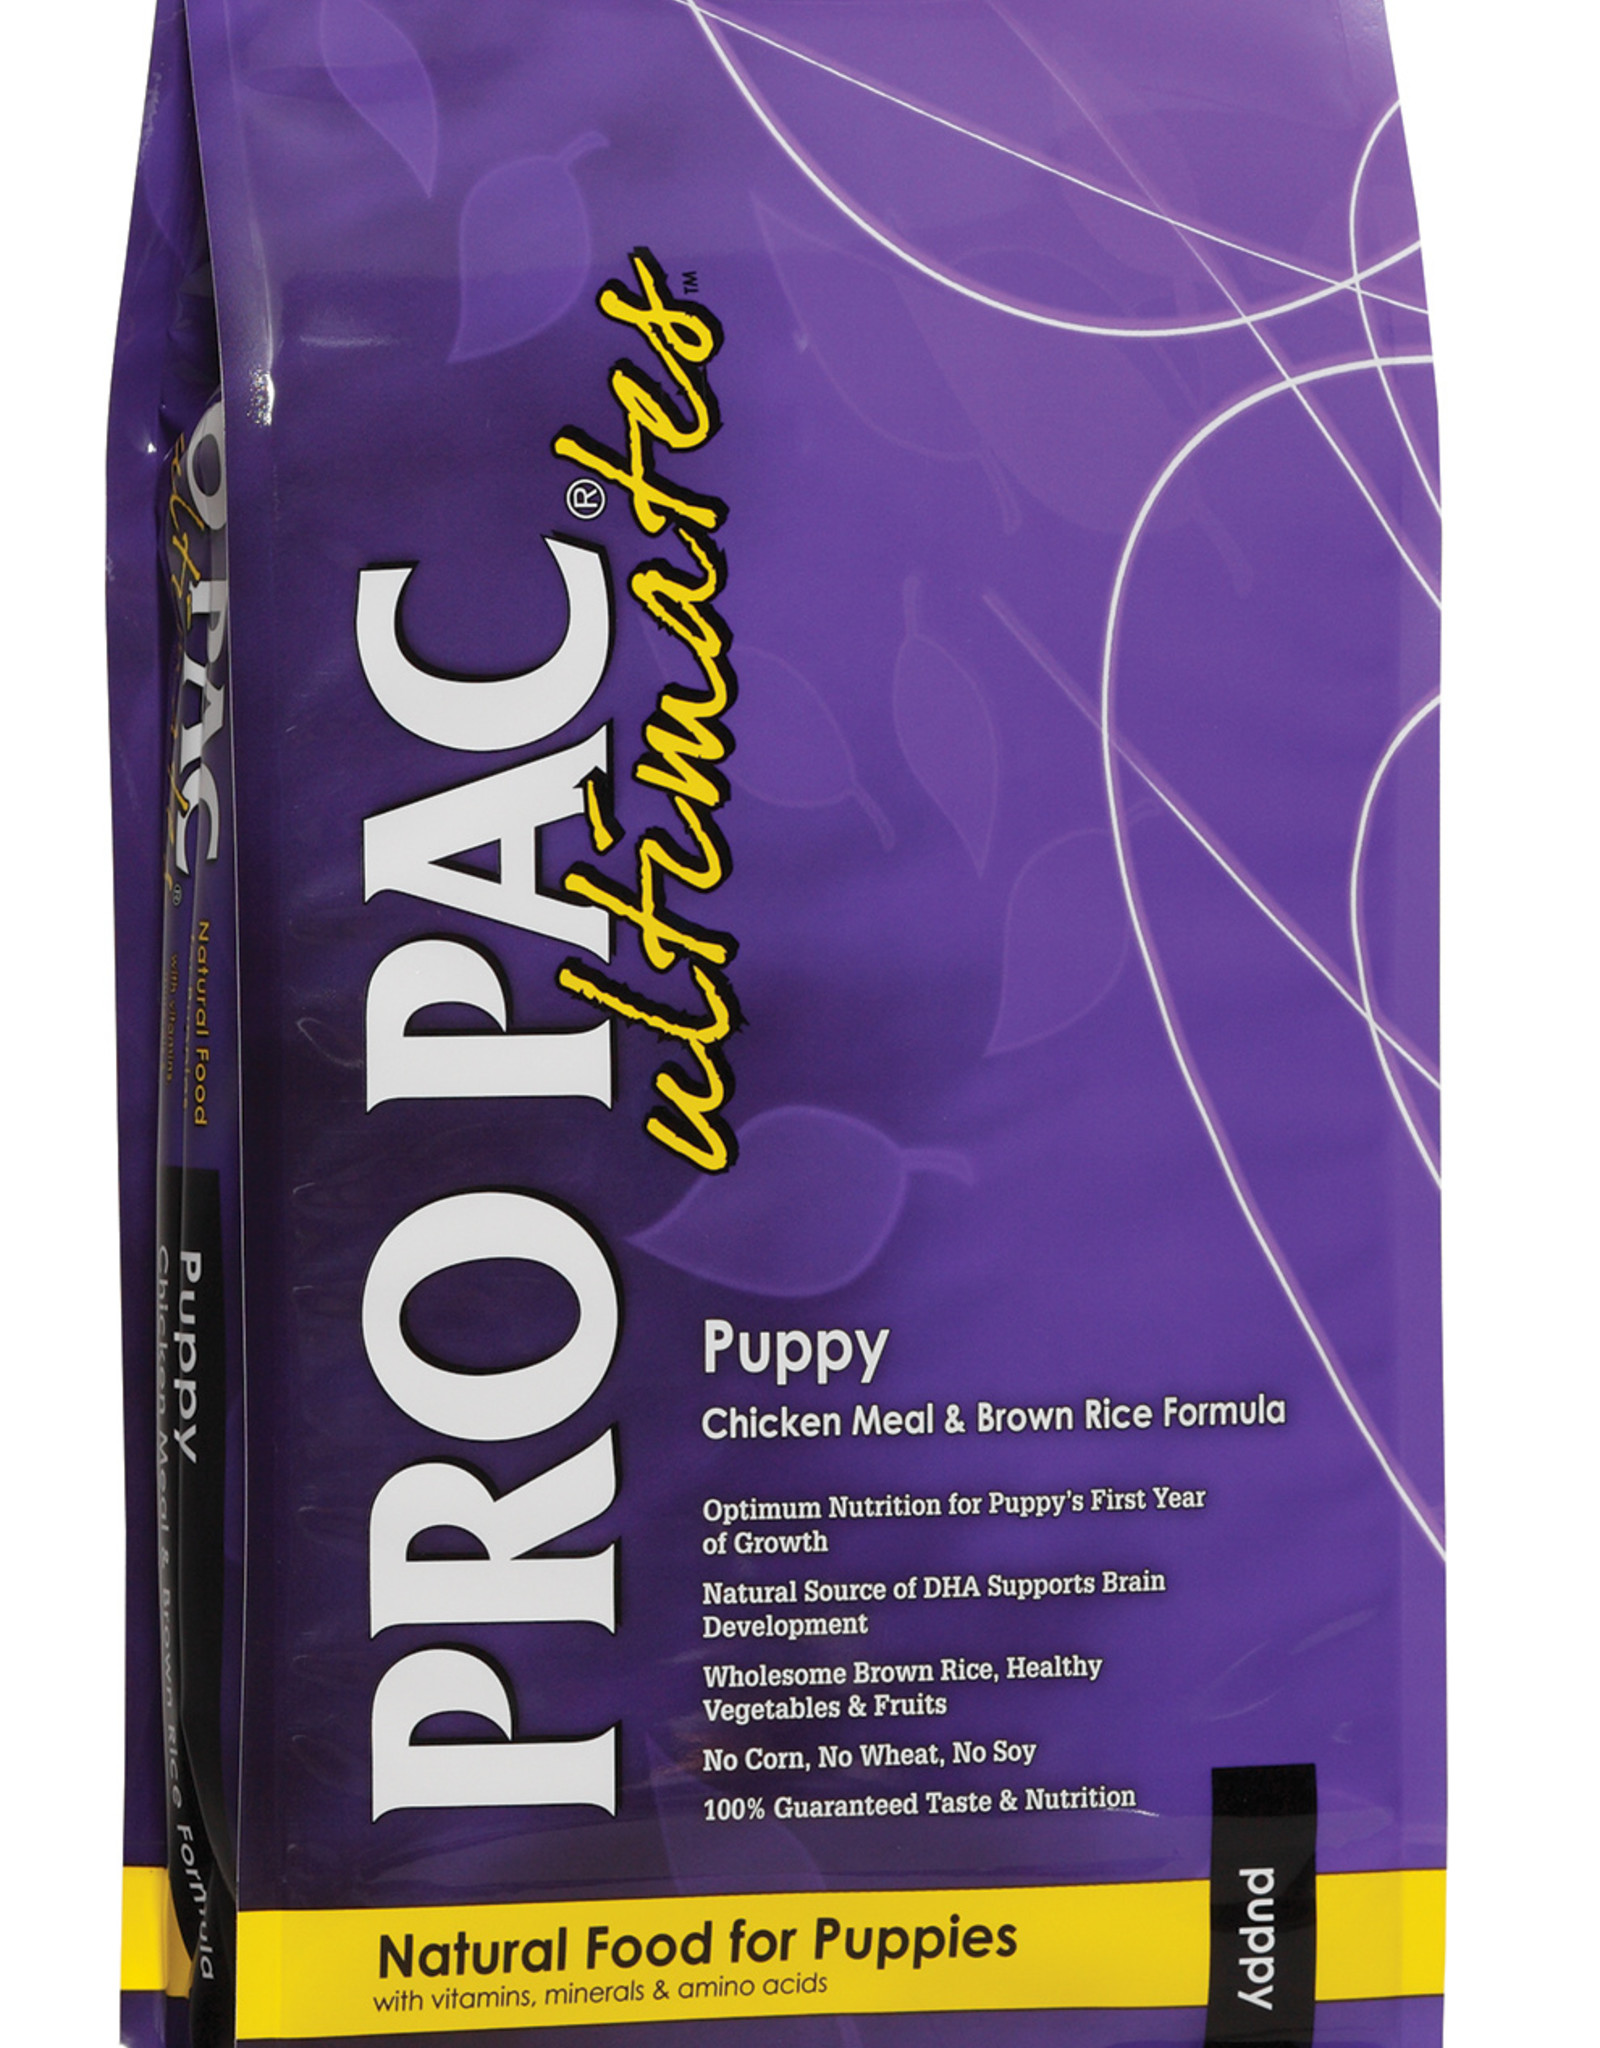 PRO PAC Ultimates PRO PAC Ultimates Dog Food Puppy Chicken Meal & Brown Rice